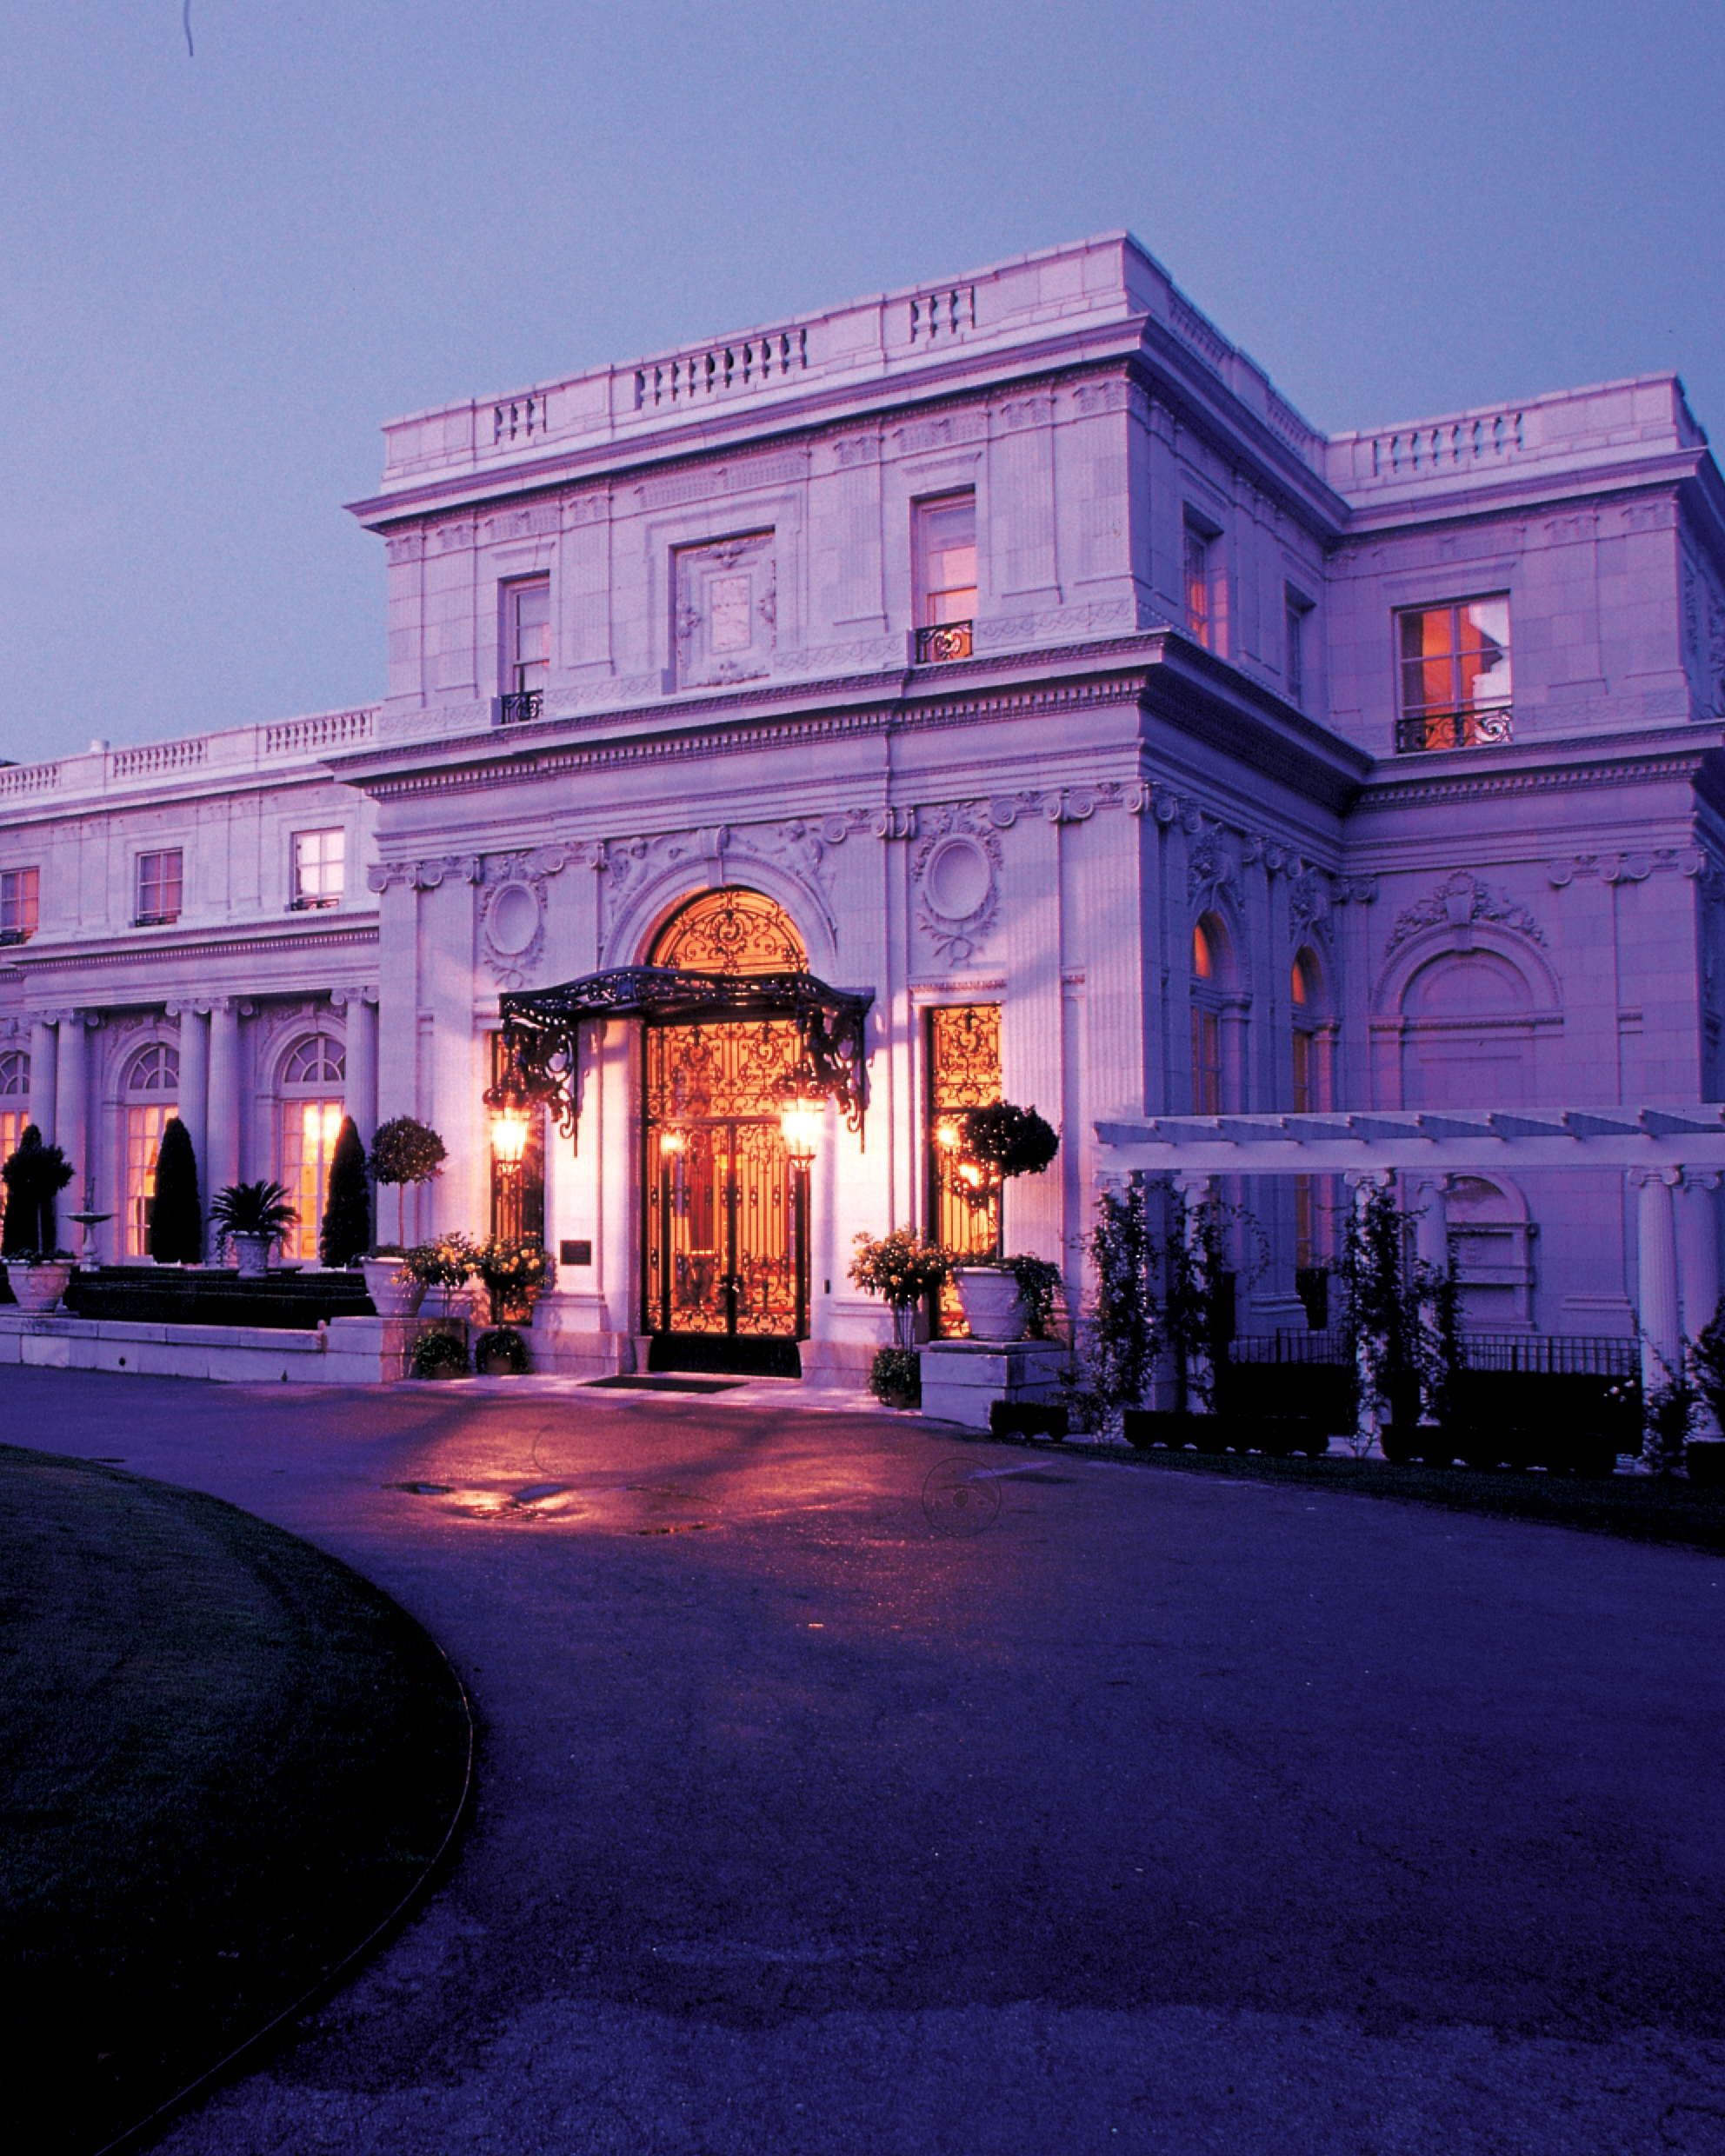 filming-locations-wedding-venues-rosecliff-great-gatsby-0215.jpg